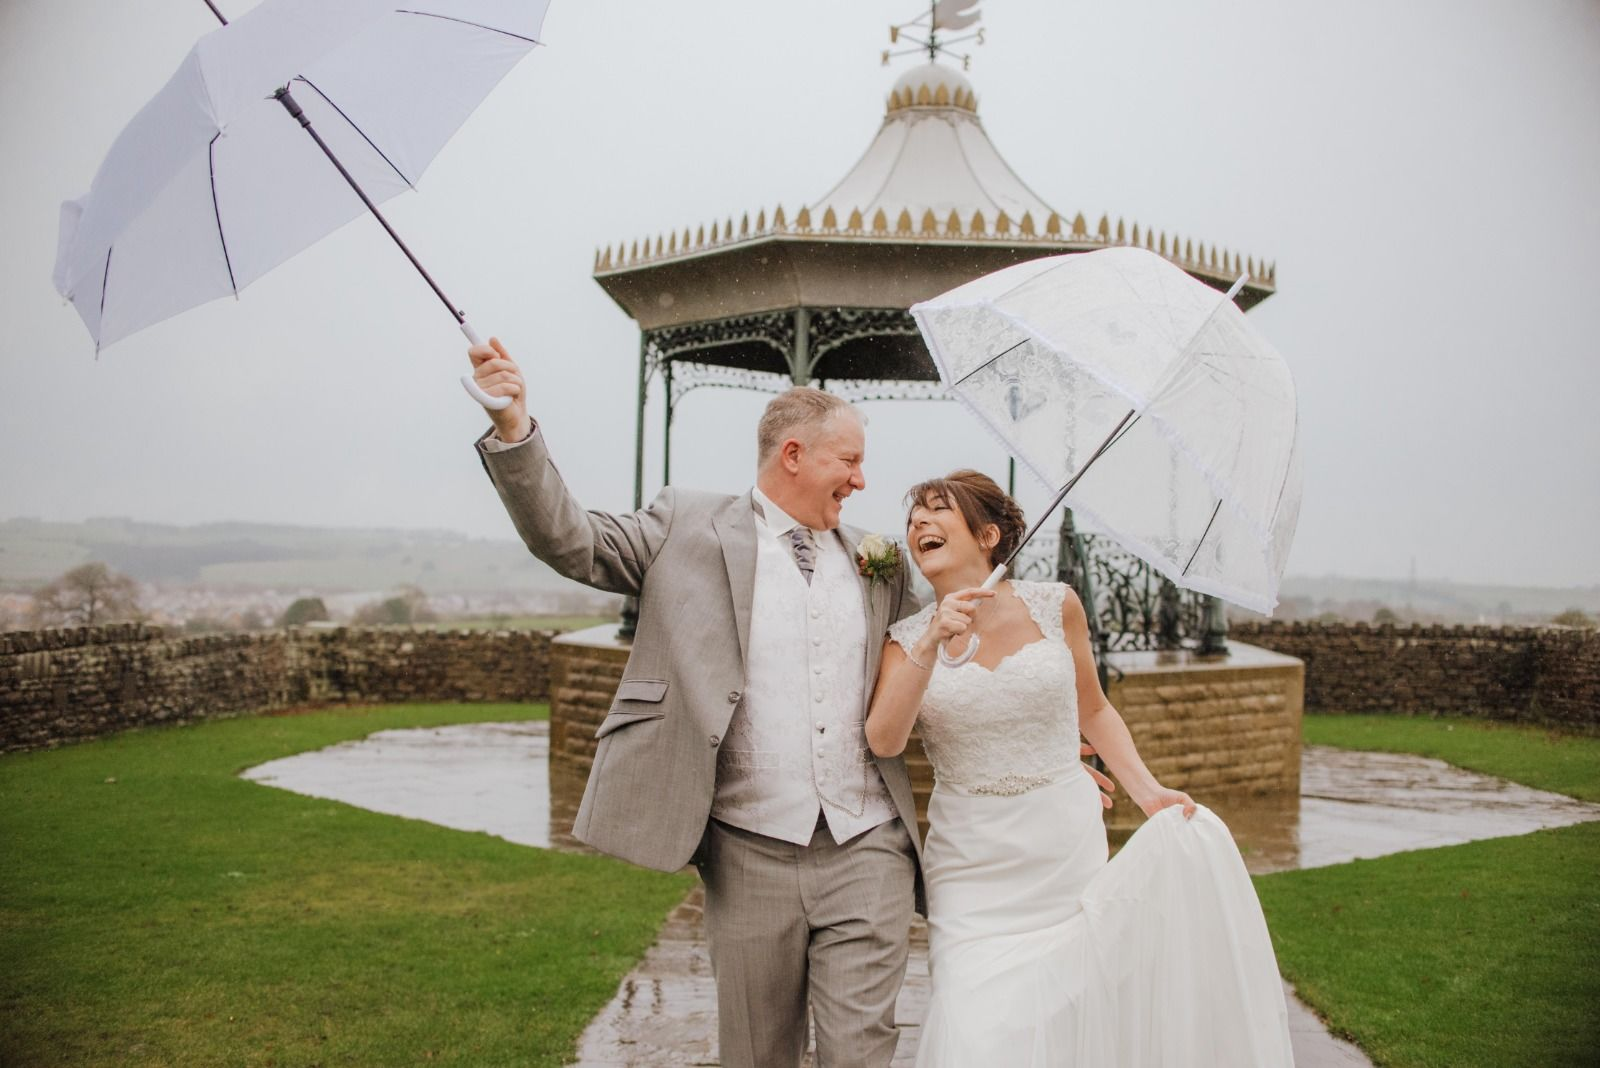 Rainy wedding day photography in Yorkshire